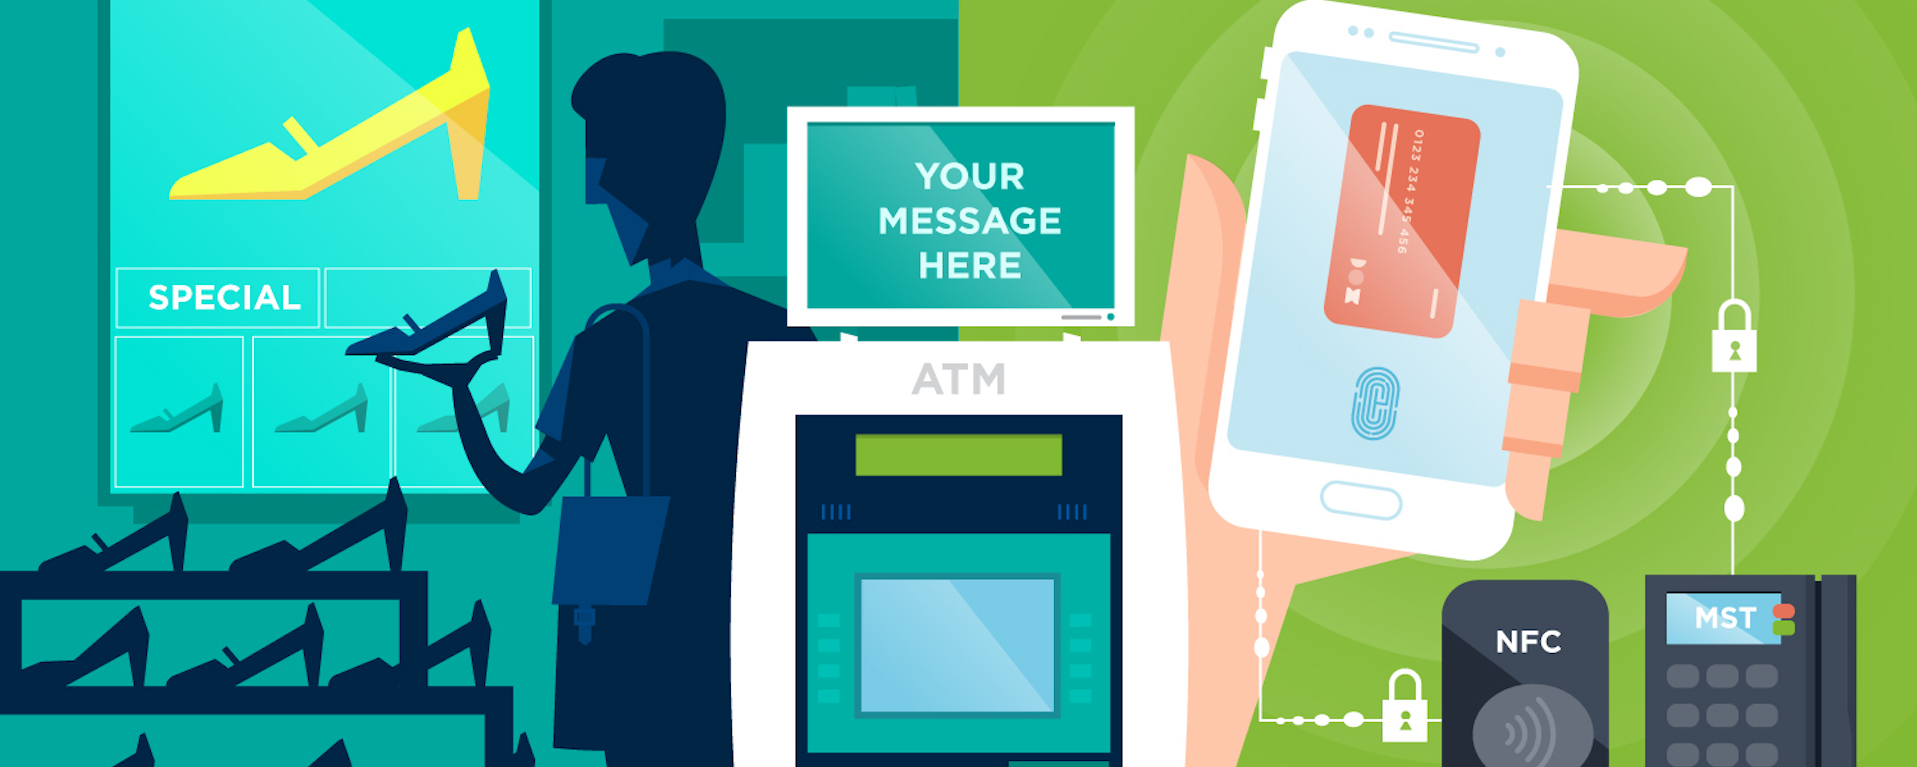 Retail technology trends 2015 are changing the industry.